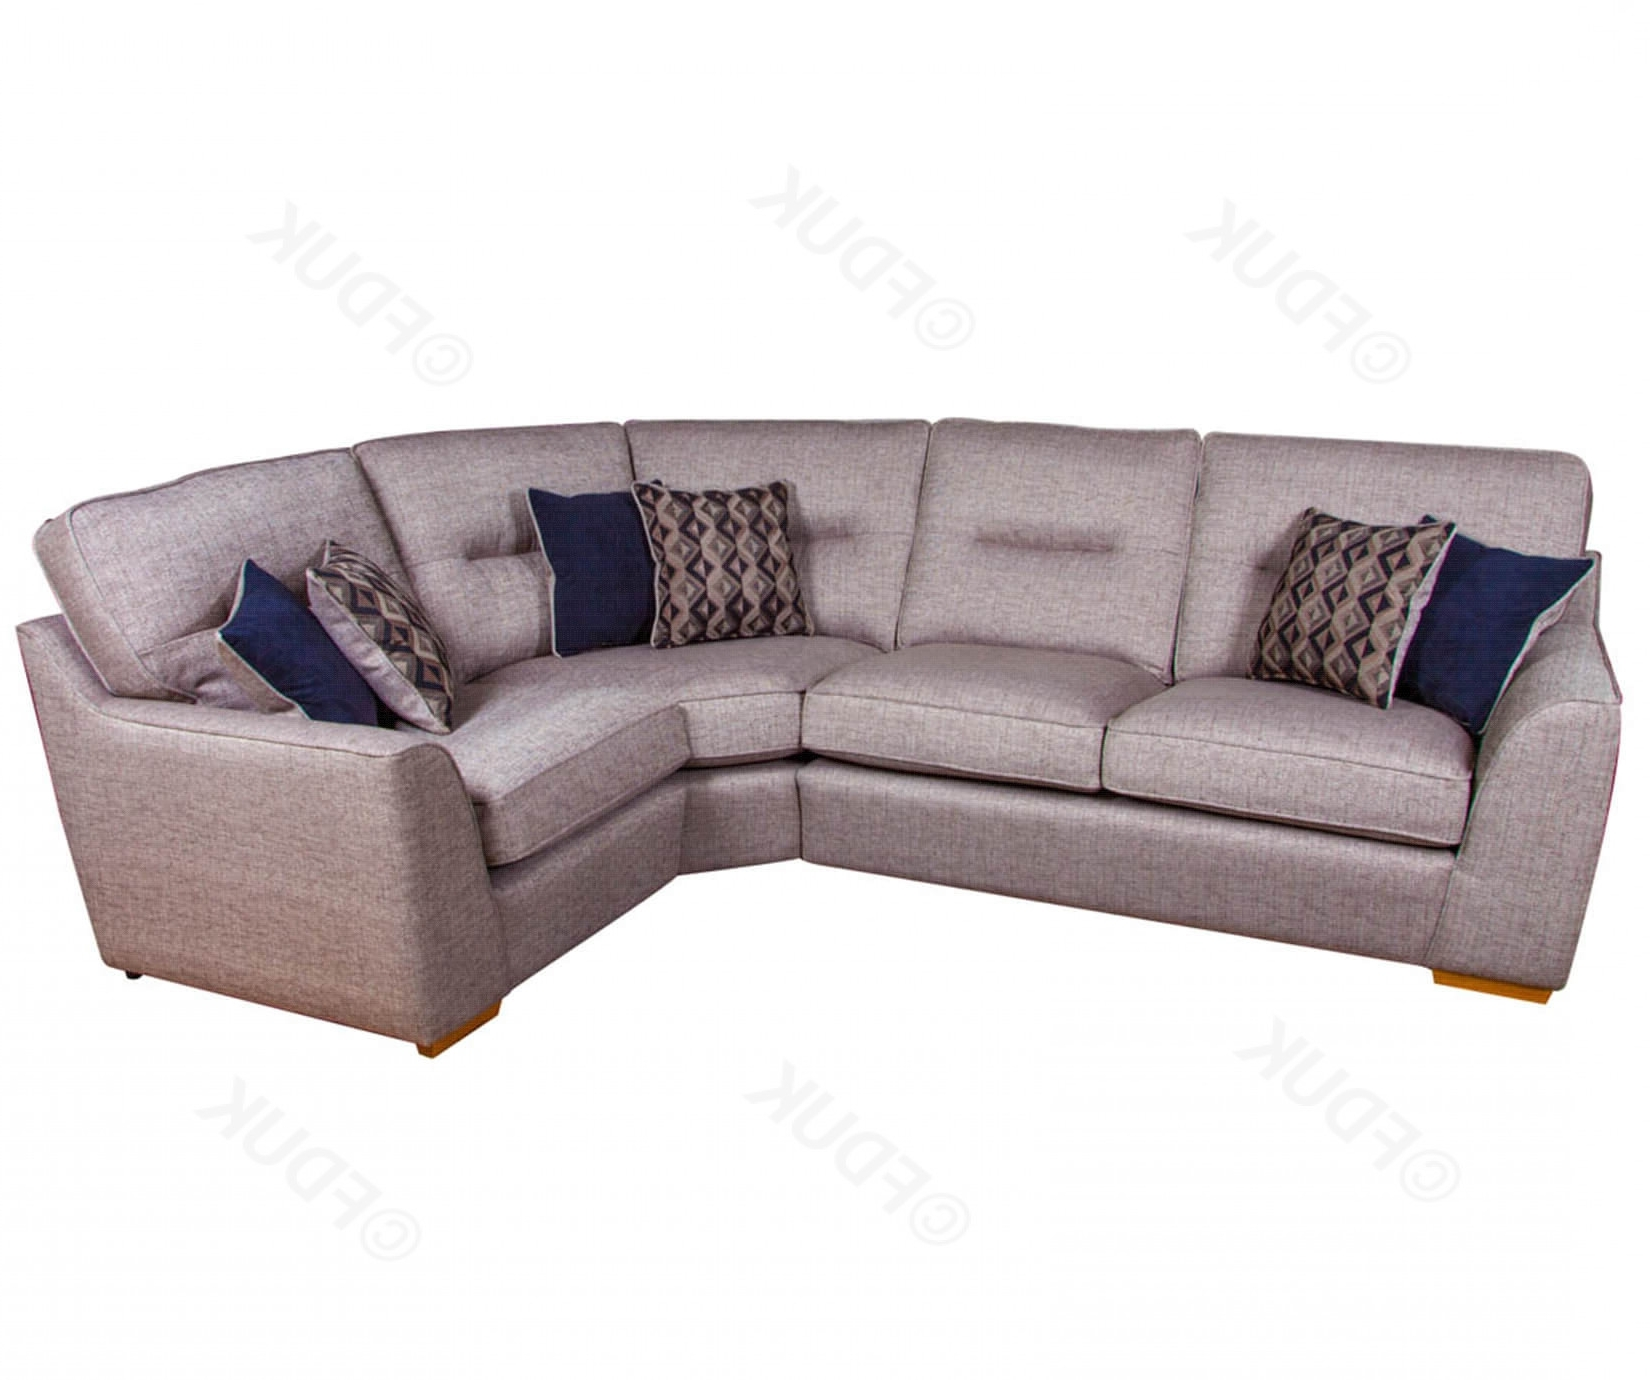 Avalon Fabric Corner Sofa Set (View 3 of 20)